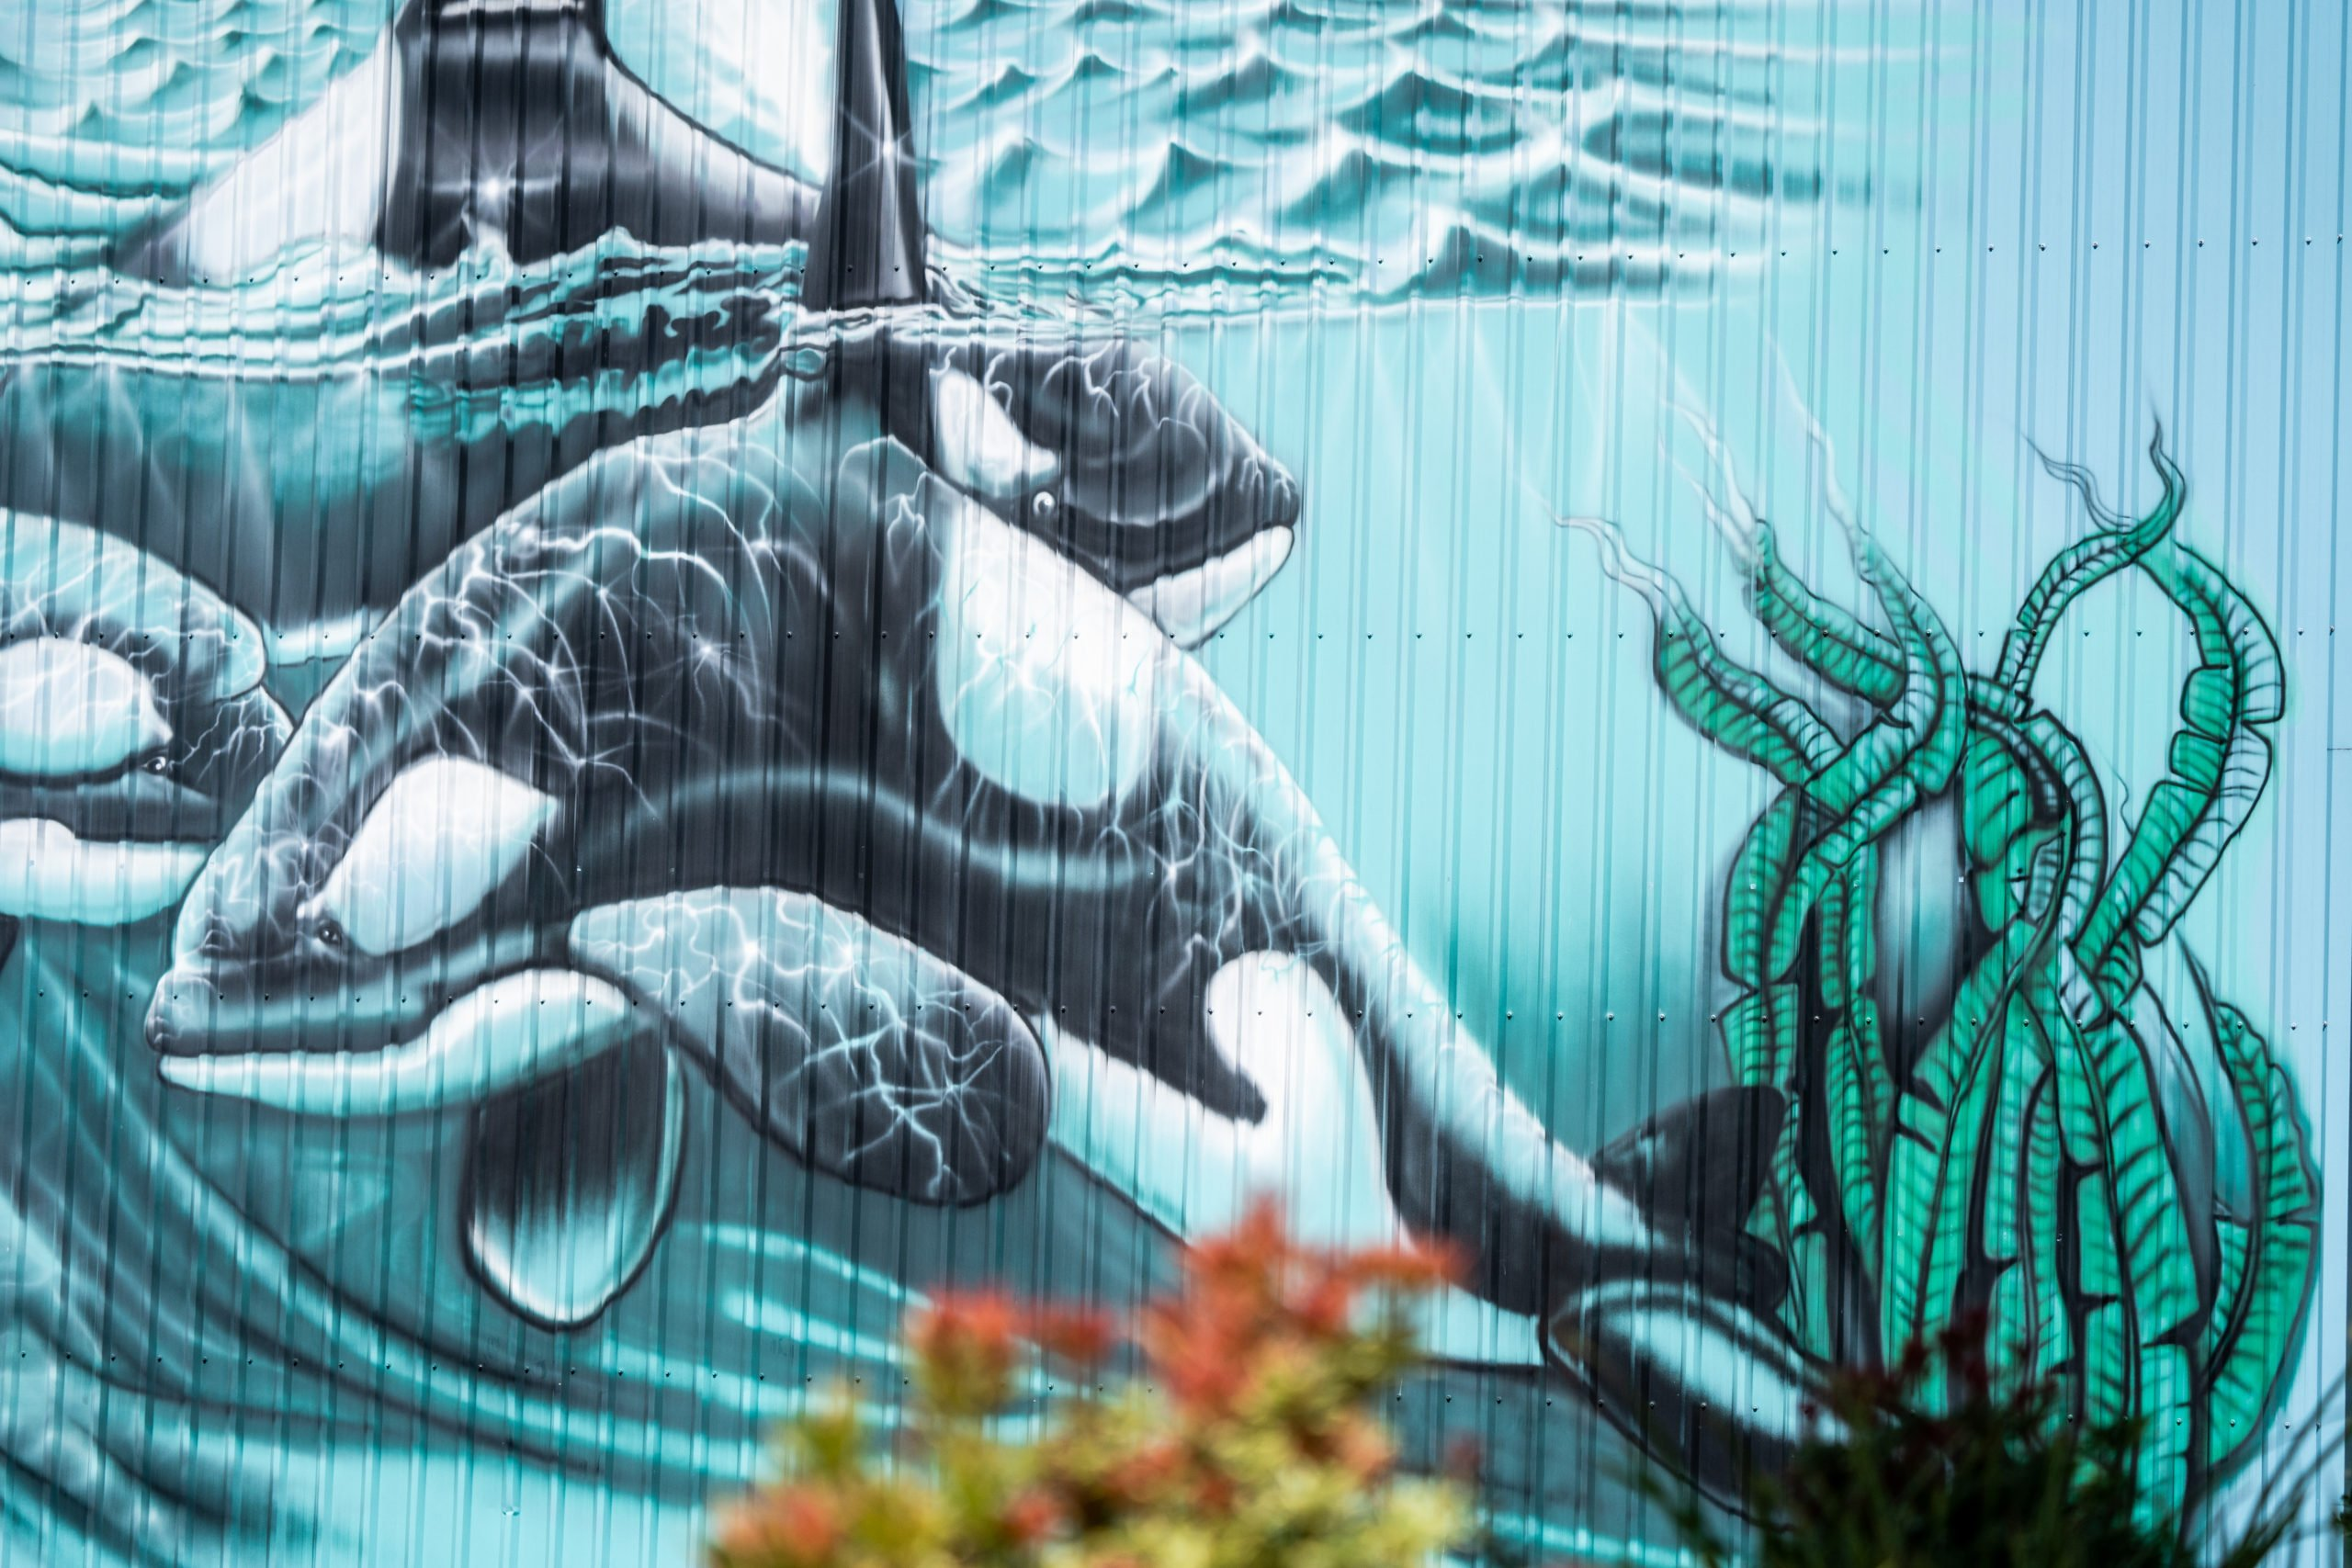 For something different, try photographing one of the many murals in Downtown Campbell River. Image credit: Tyler Cave